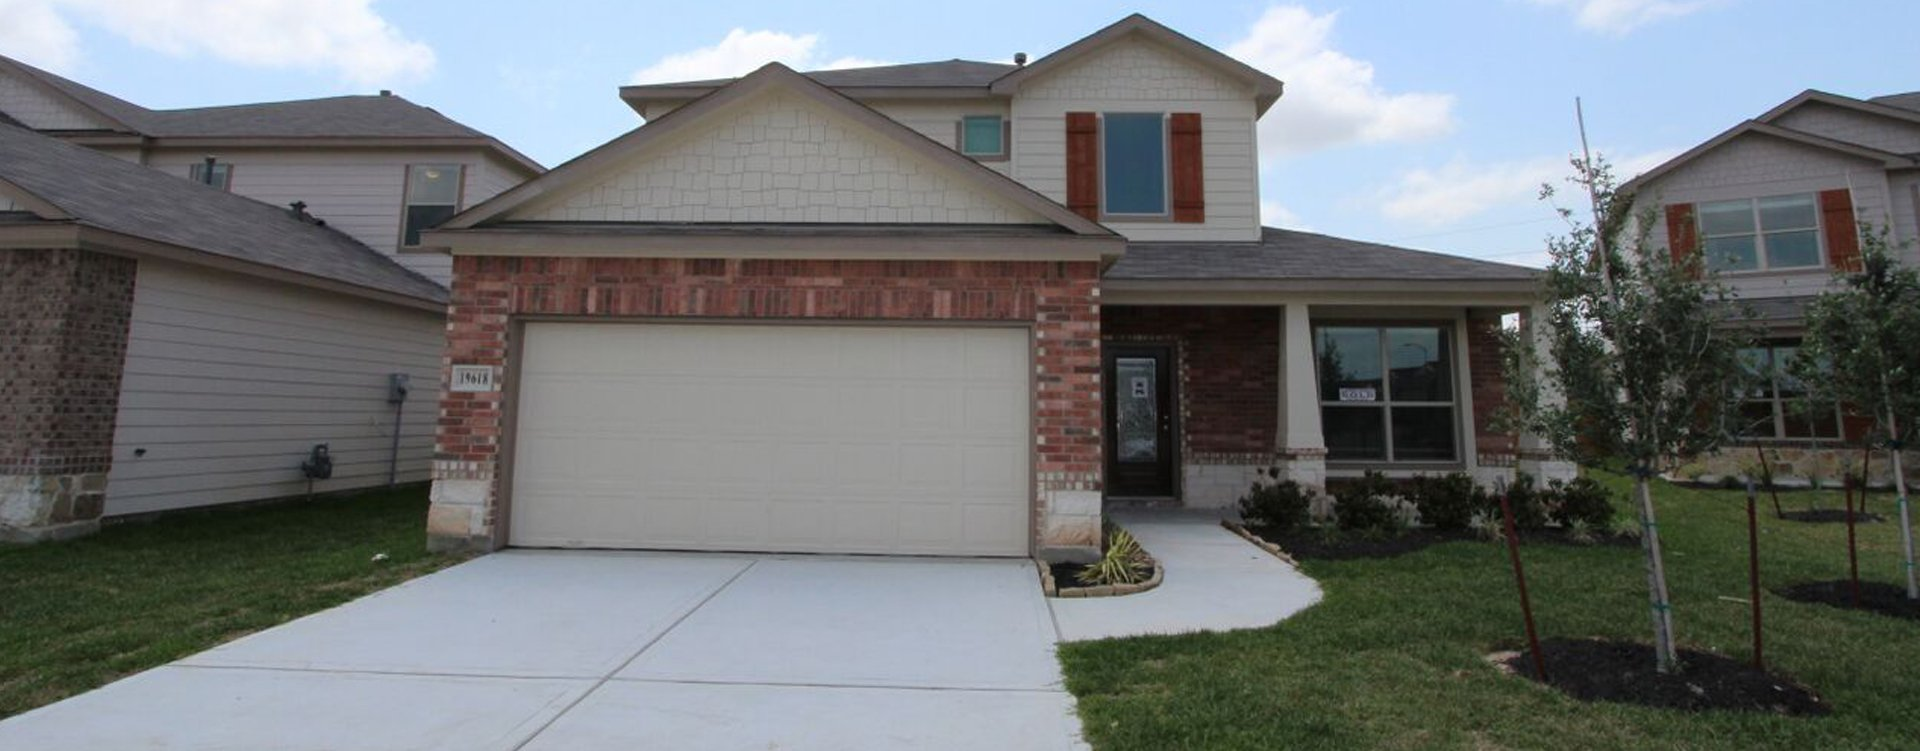 Alvin Texas New home development Kendall Lakes